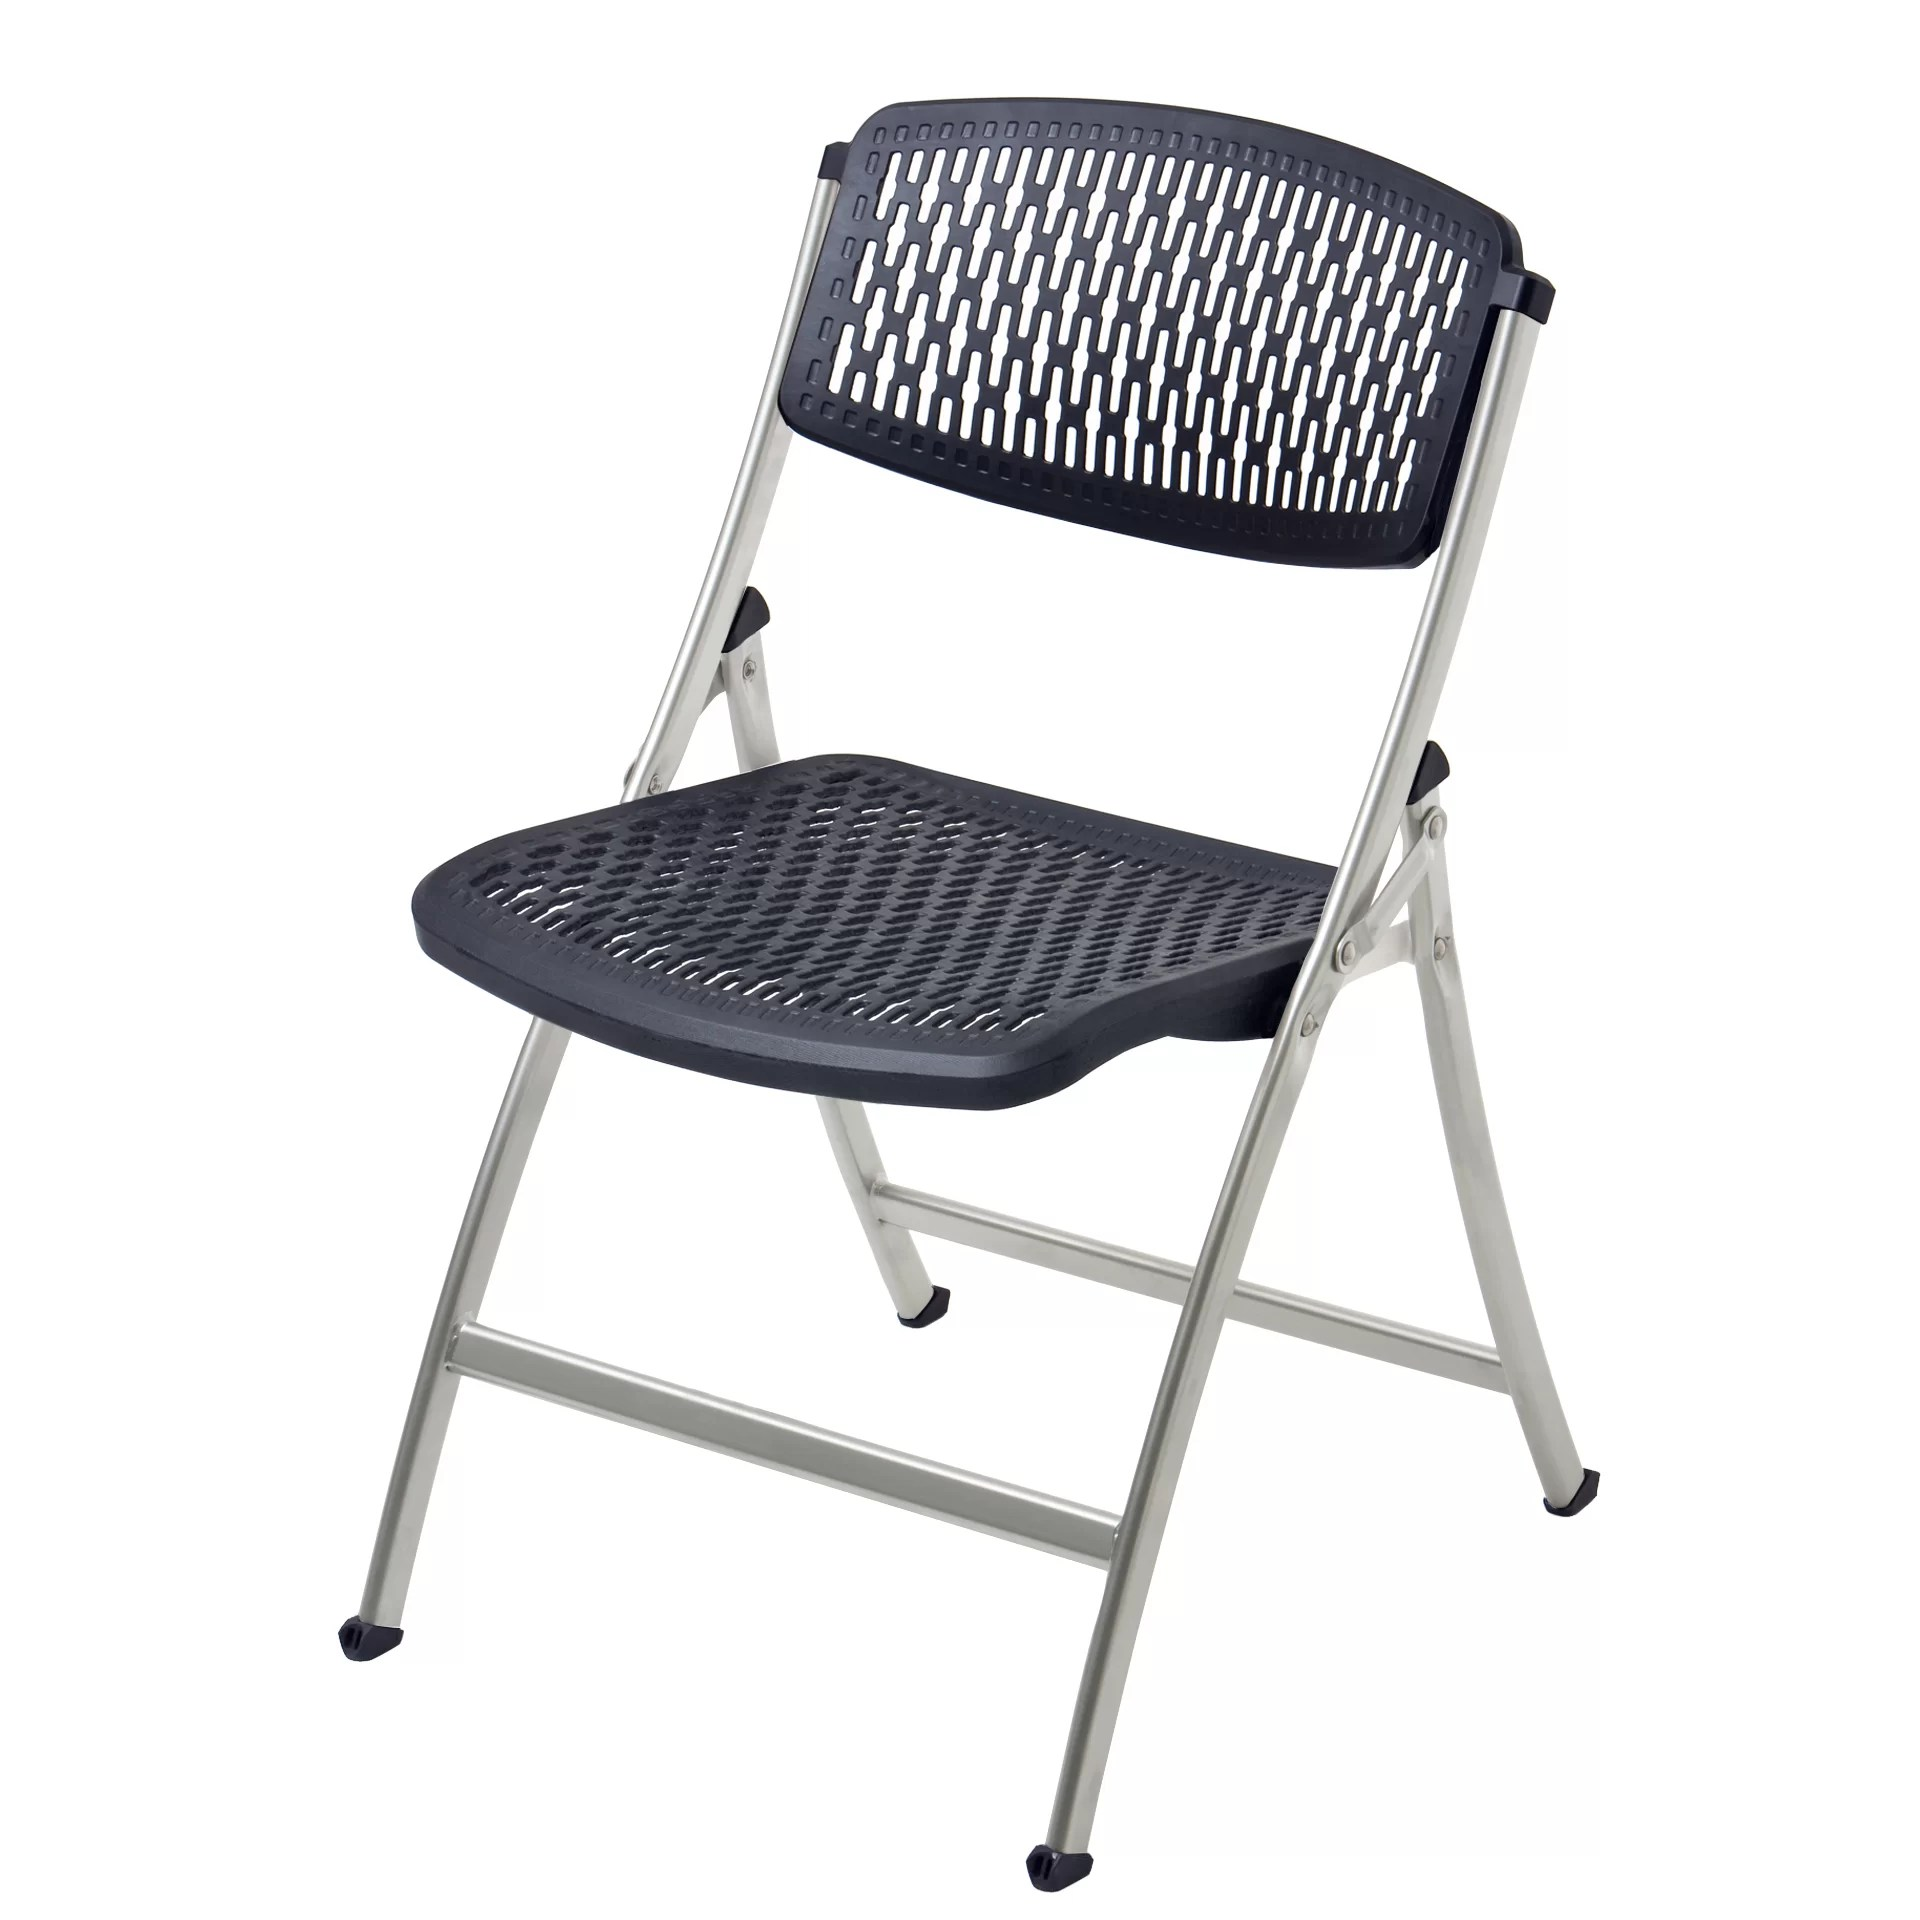 Foldable Chair Mity Lite Flex One Folding Chair And Reviews Wayfair